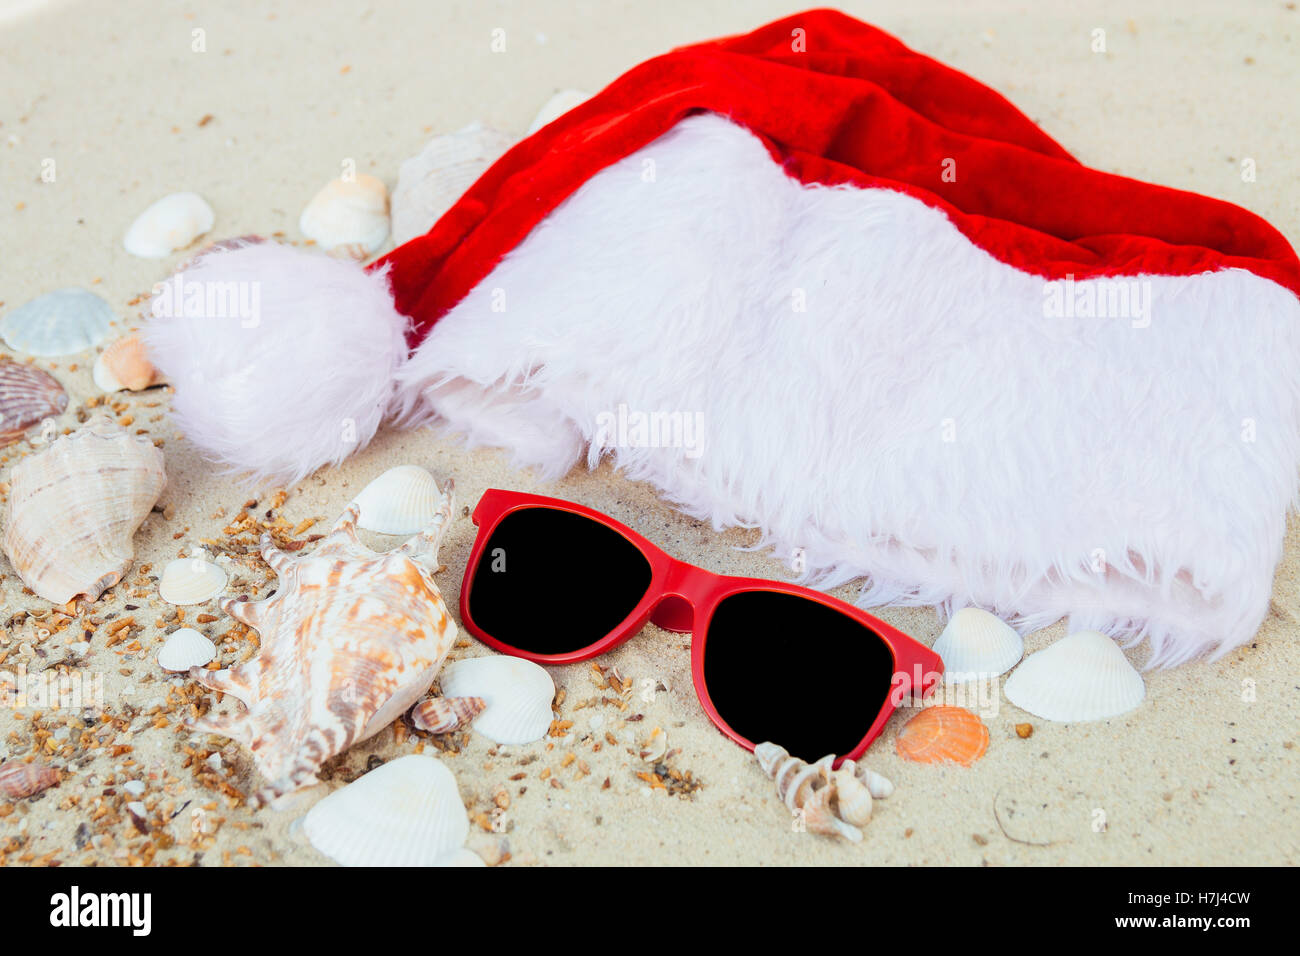 59f6cd1e Christmas hat and red sunglasses on the beach. Santa hat and eyeglasses on  the sand